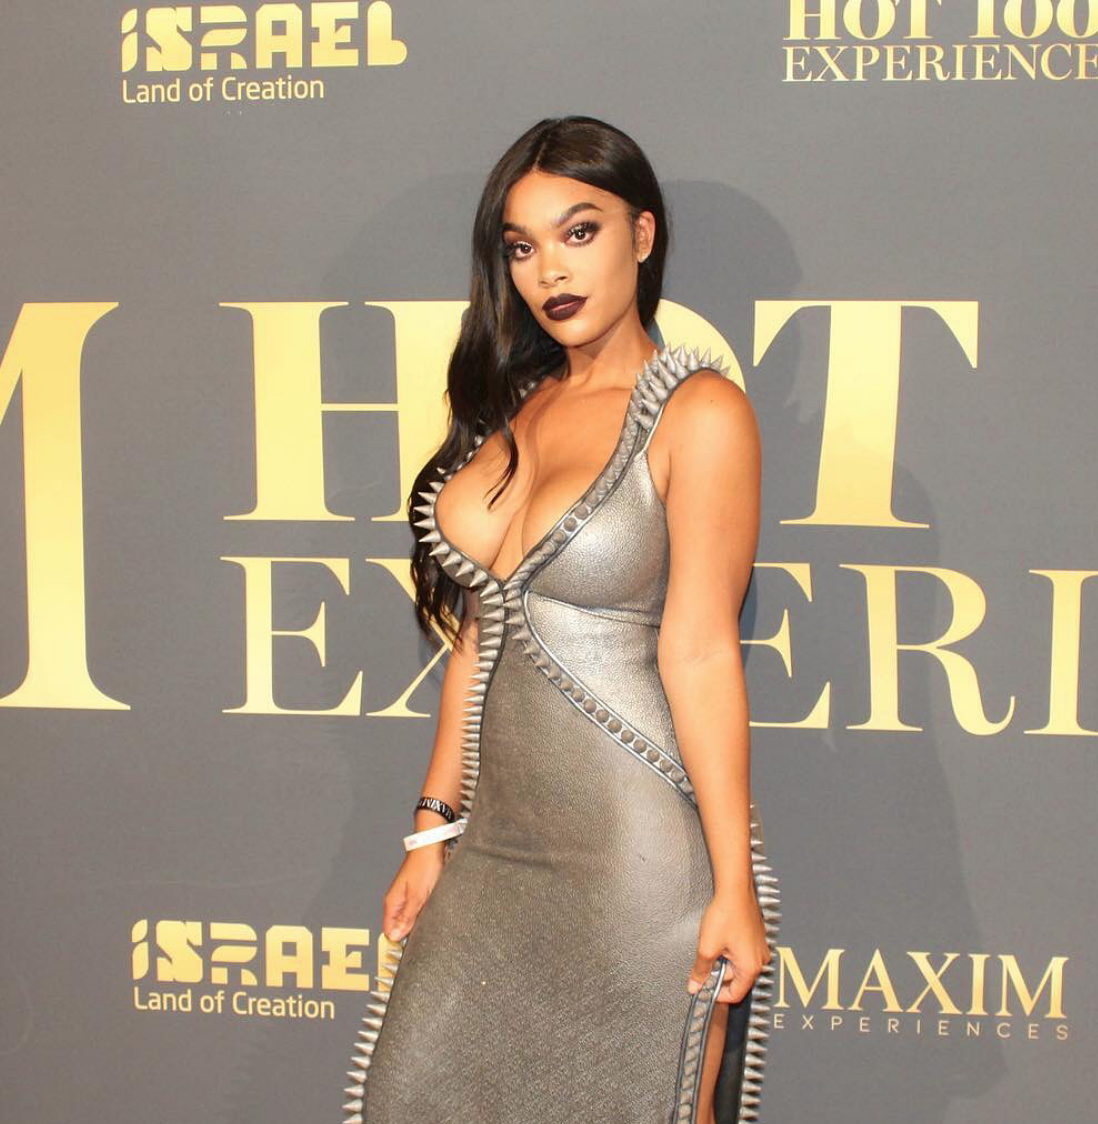 Stunning  @vh1  star for hit show  @basketballwives   @_mehganj shot down the  @maximmag   #hot100  red carpet due to her hotness wearing our designers  @danrichters  styled by  #nikko fashion provided by  #ivanbittonstylehouse